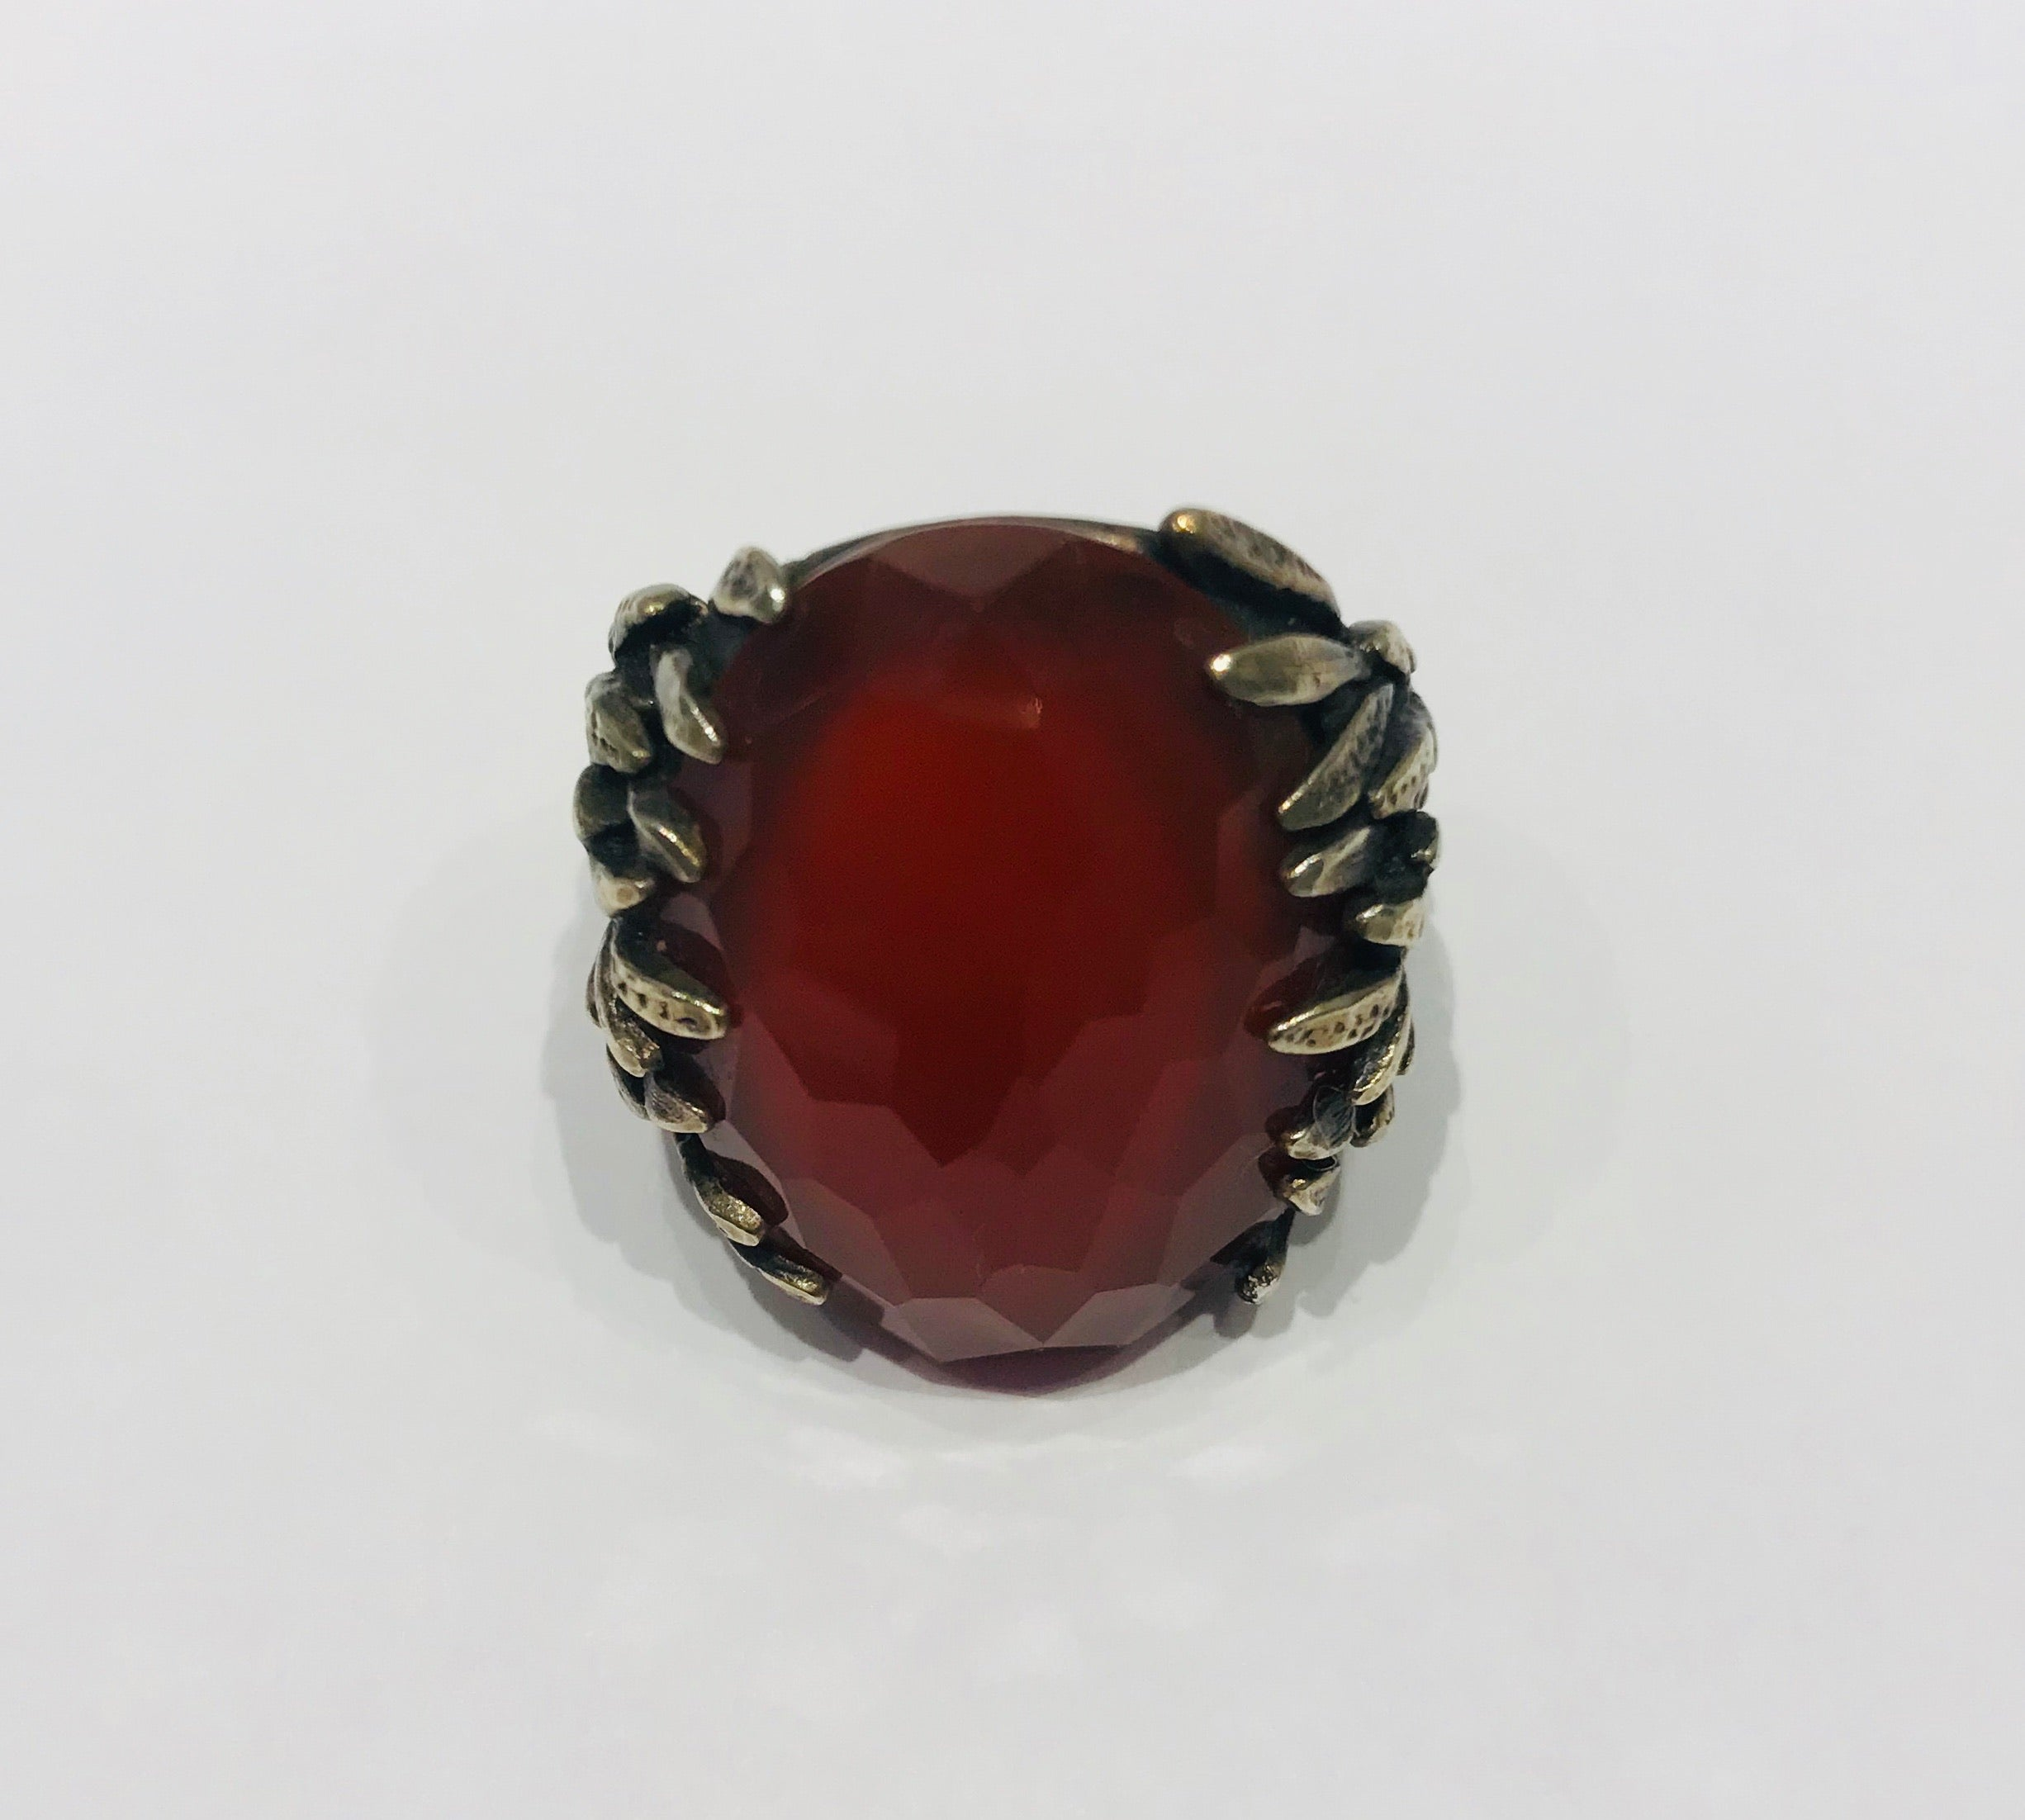 Wouters & Hendrix ring with agate stone